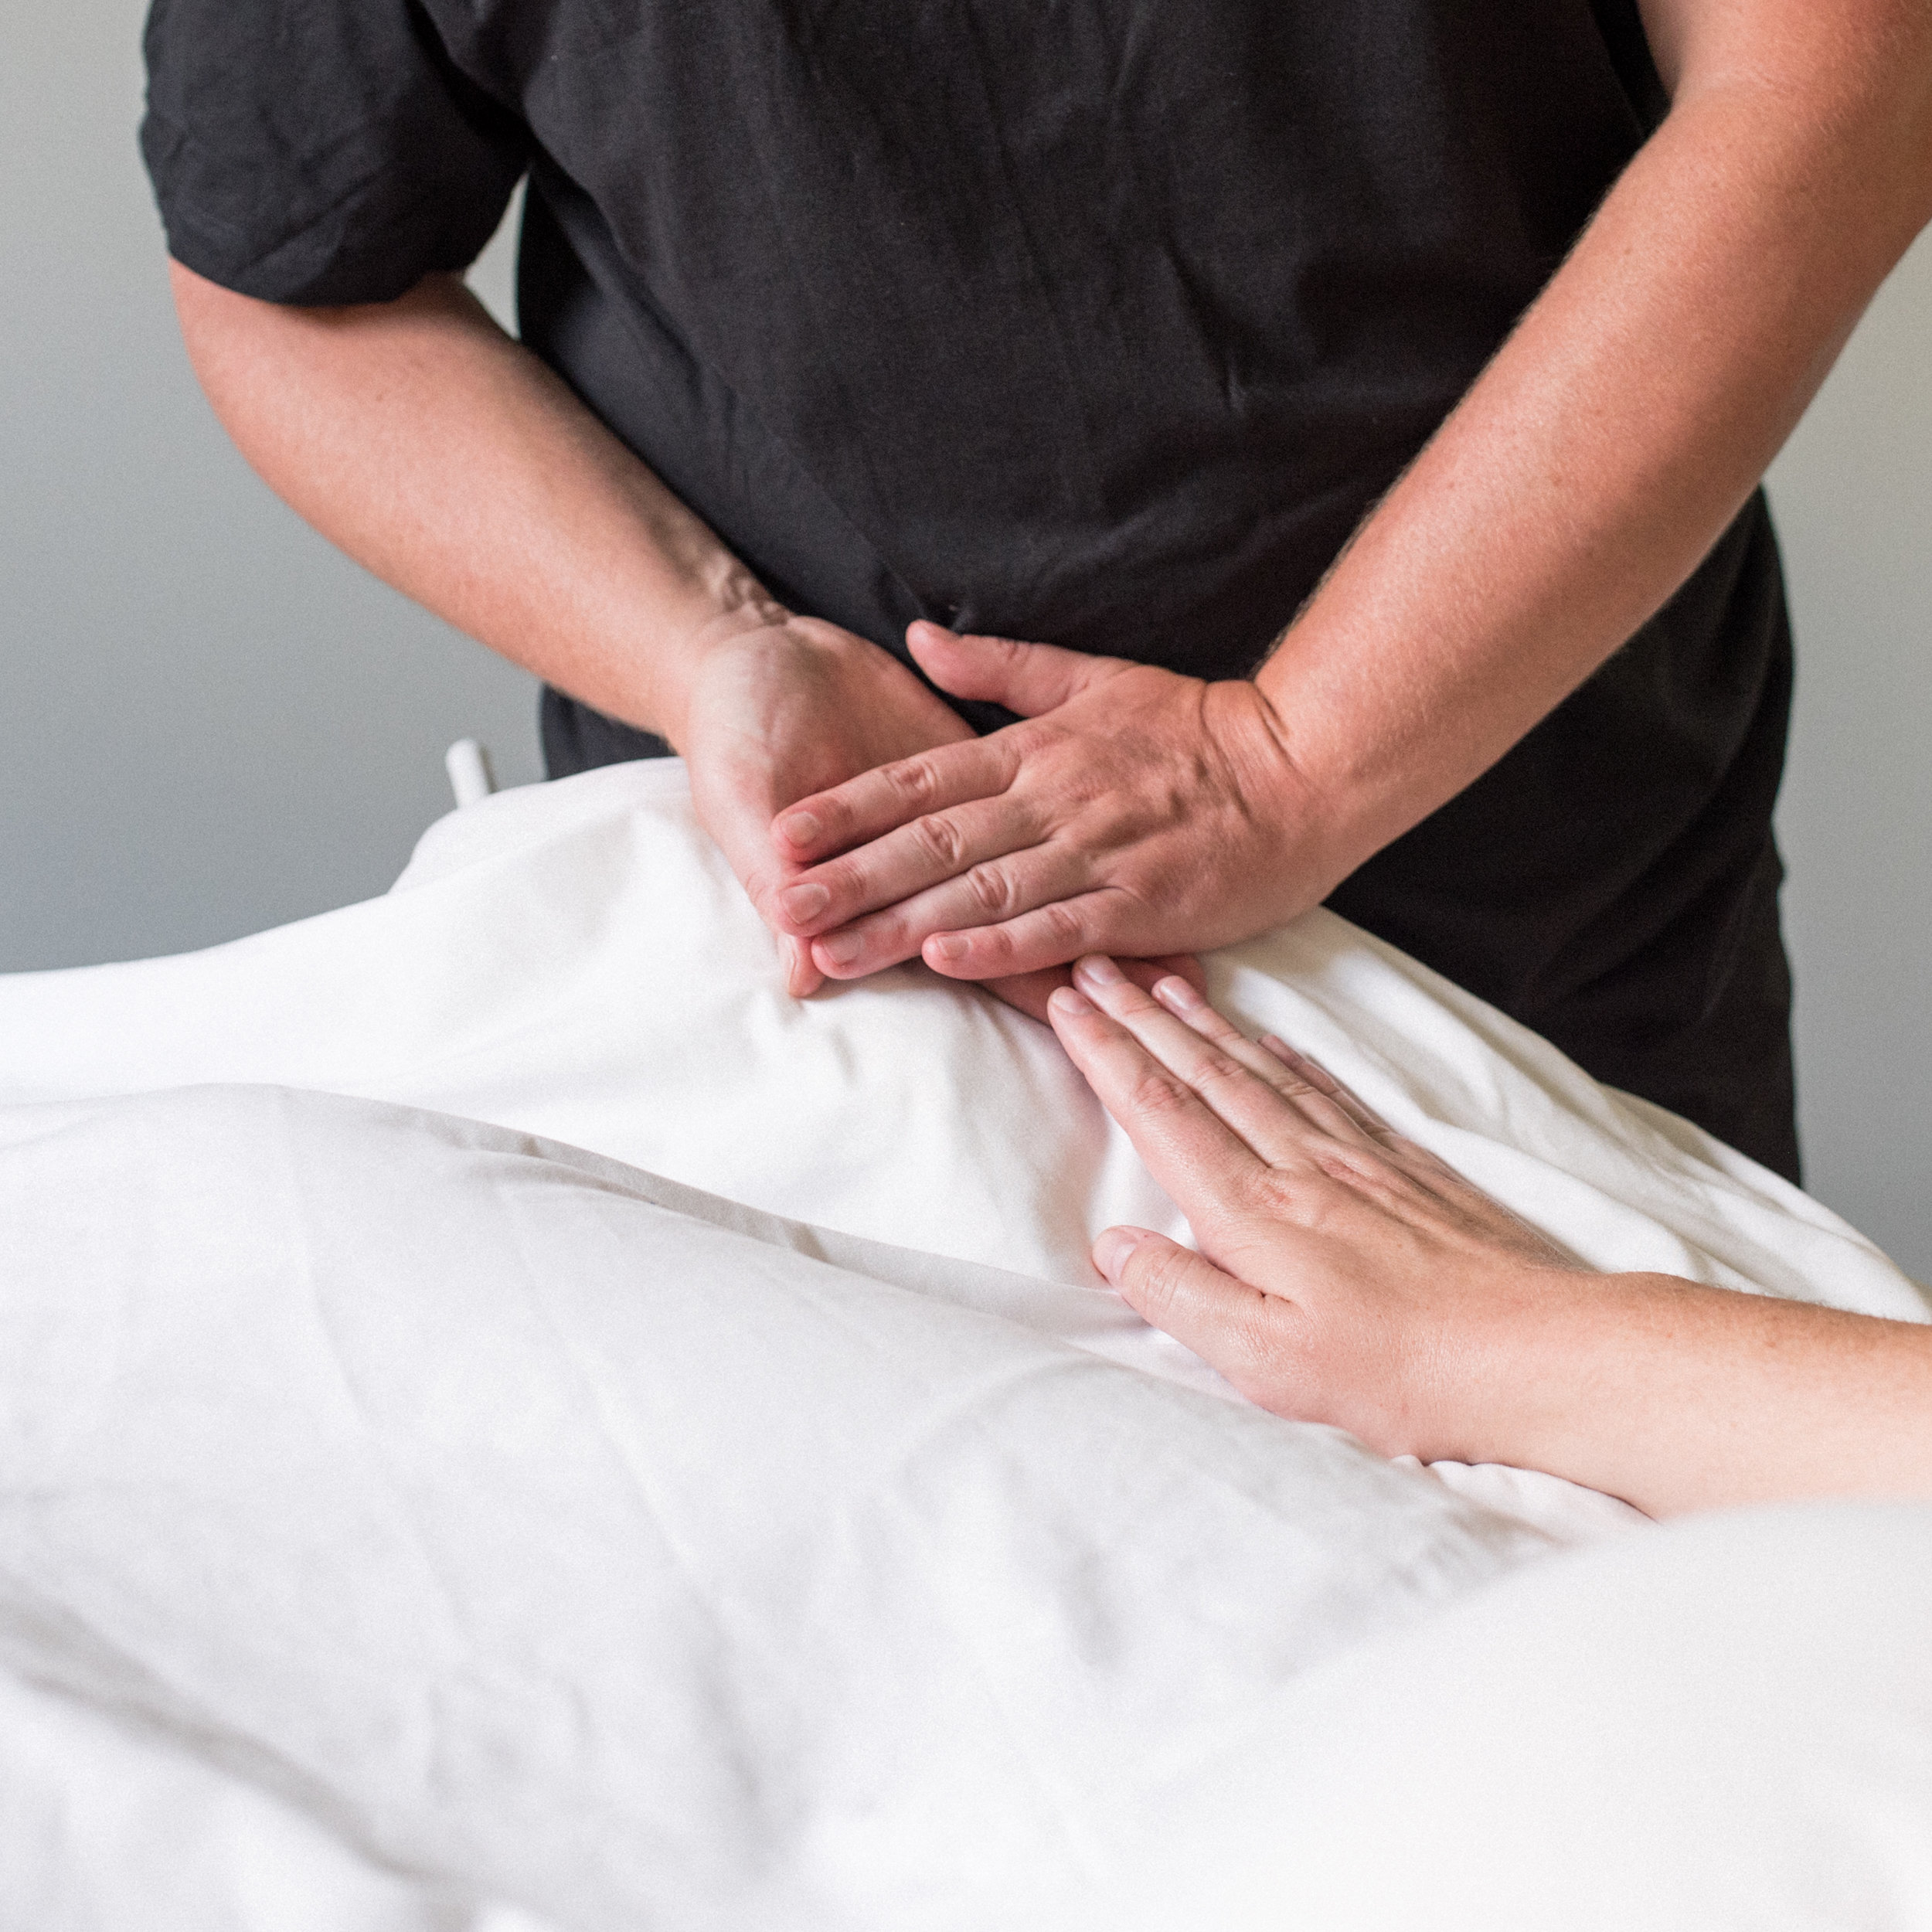 Oncology - In oncology massage, special considerations are given to those going through treatment of cancer and those that have a history of cancer.  Considerations include patients activity level, location, pressure, and direction of strokes. Peripheral neuropathy is common among cancer patients, and specific protocols are followed.